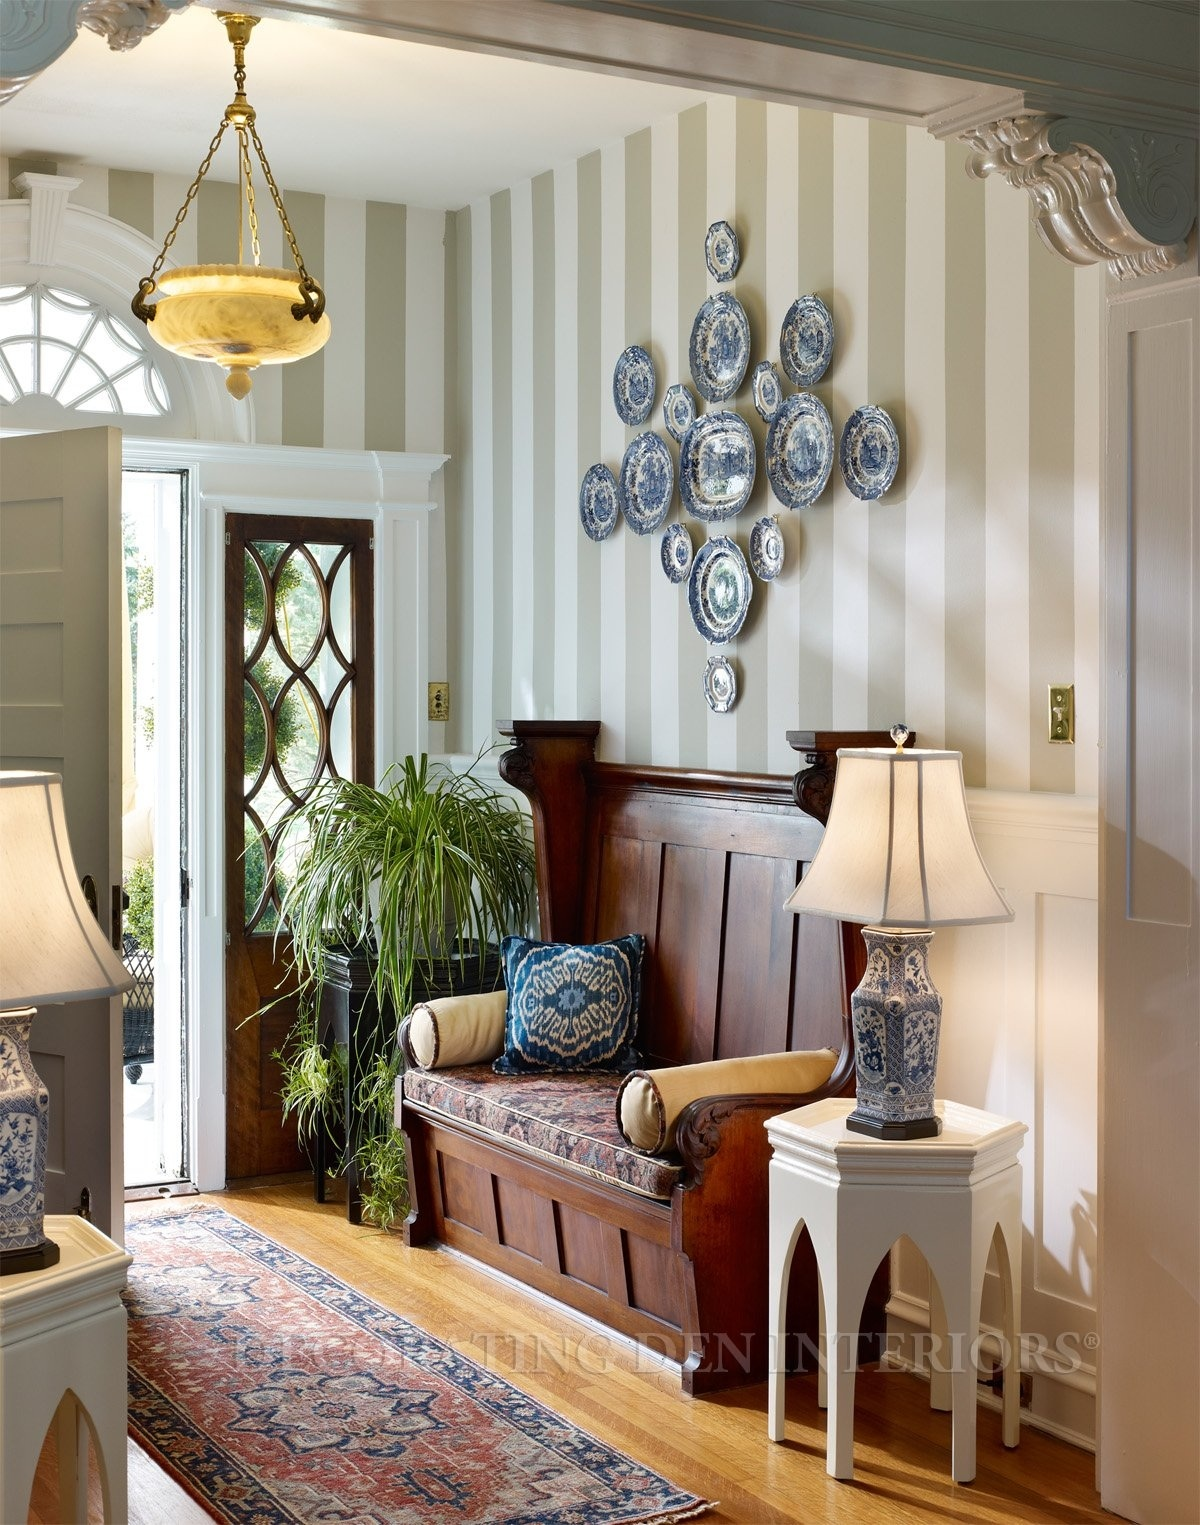 Ideas-For-Home-Entryways-images-2-Pics-Of-Entryways